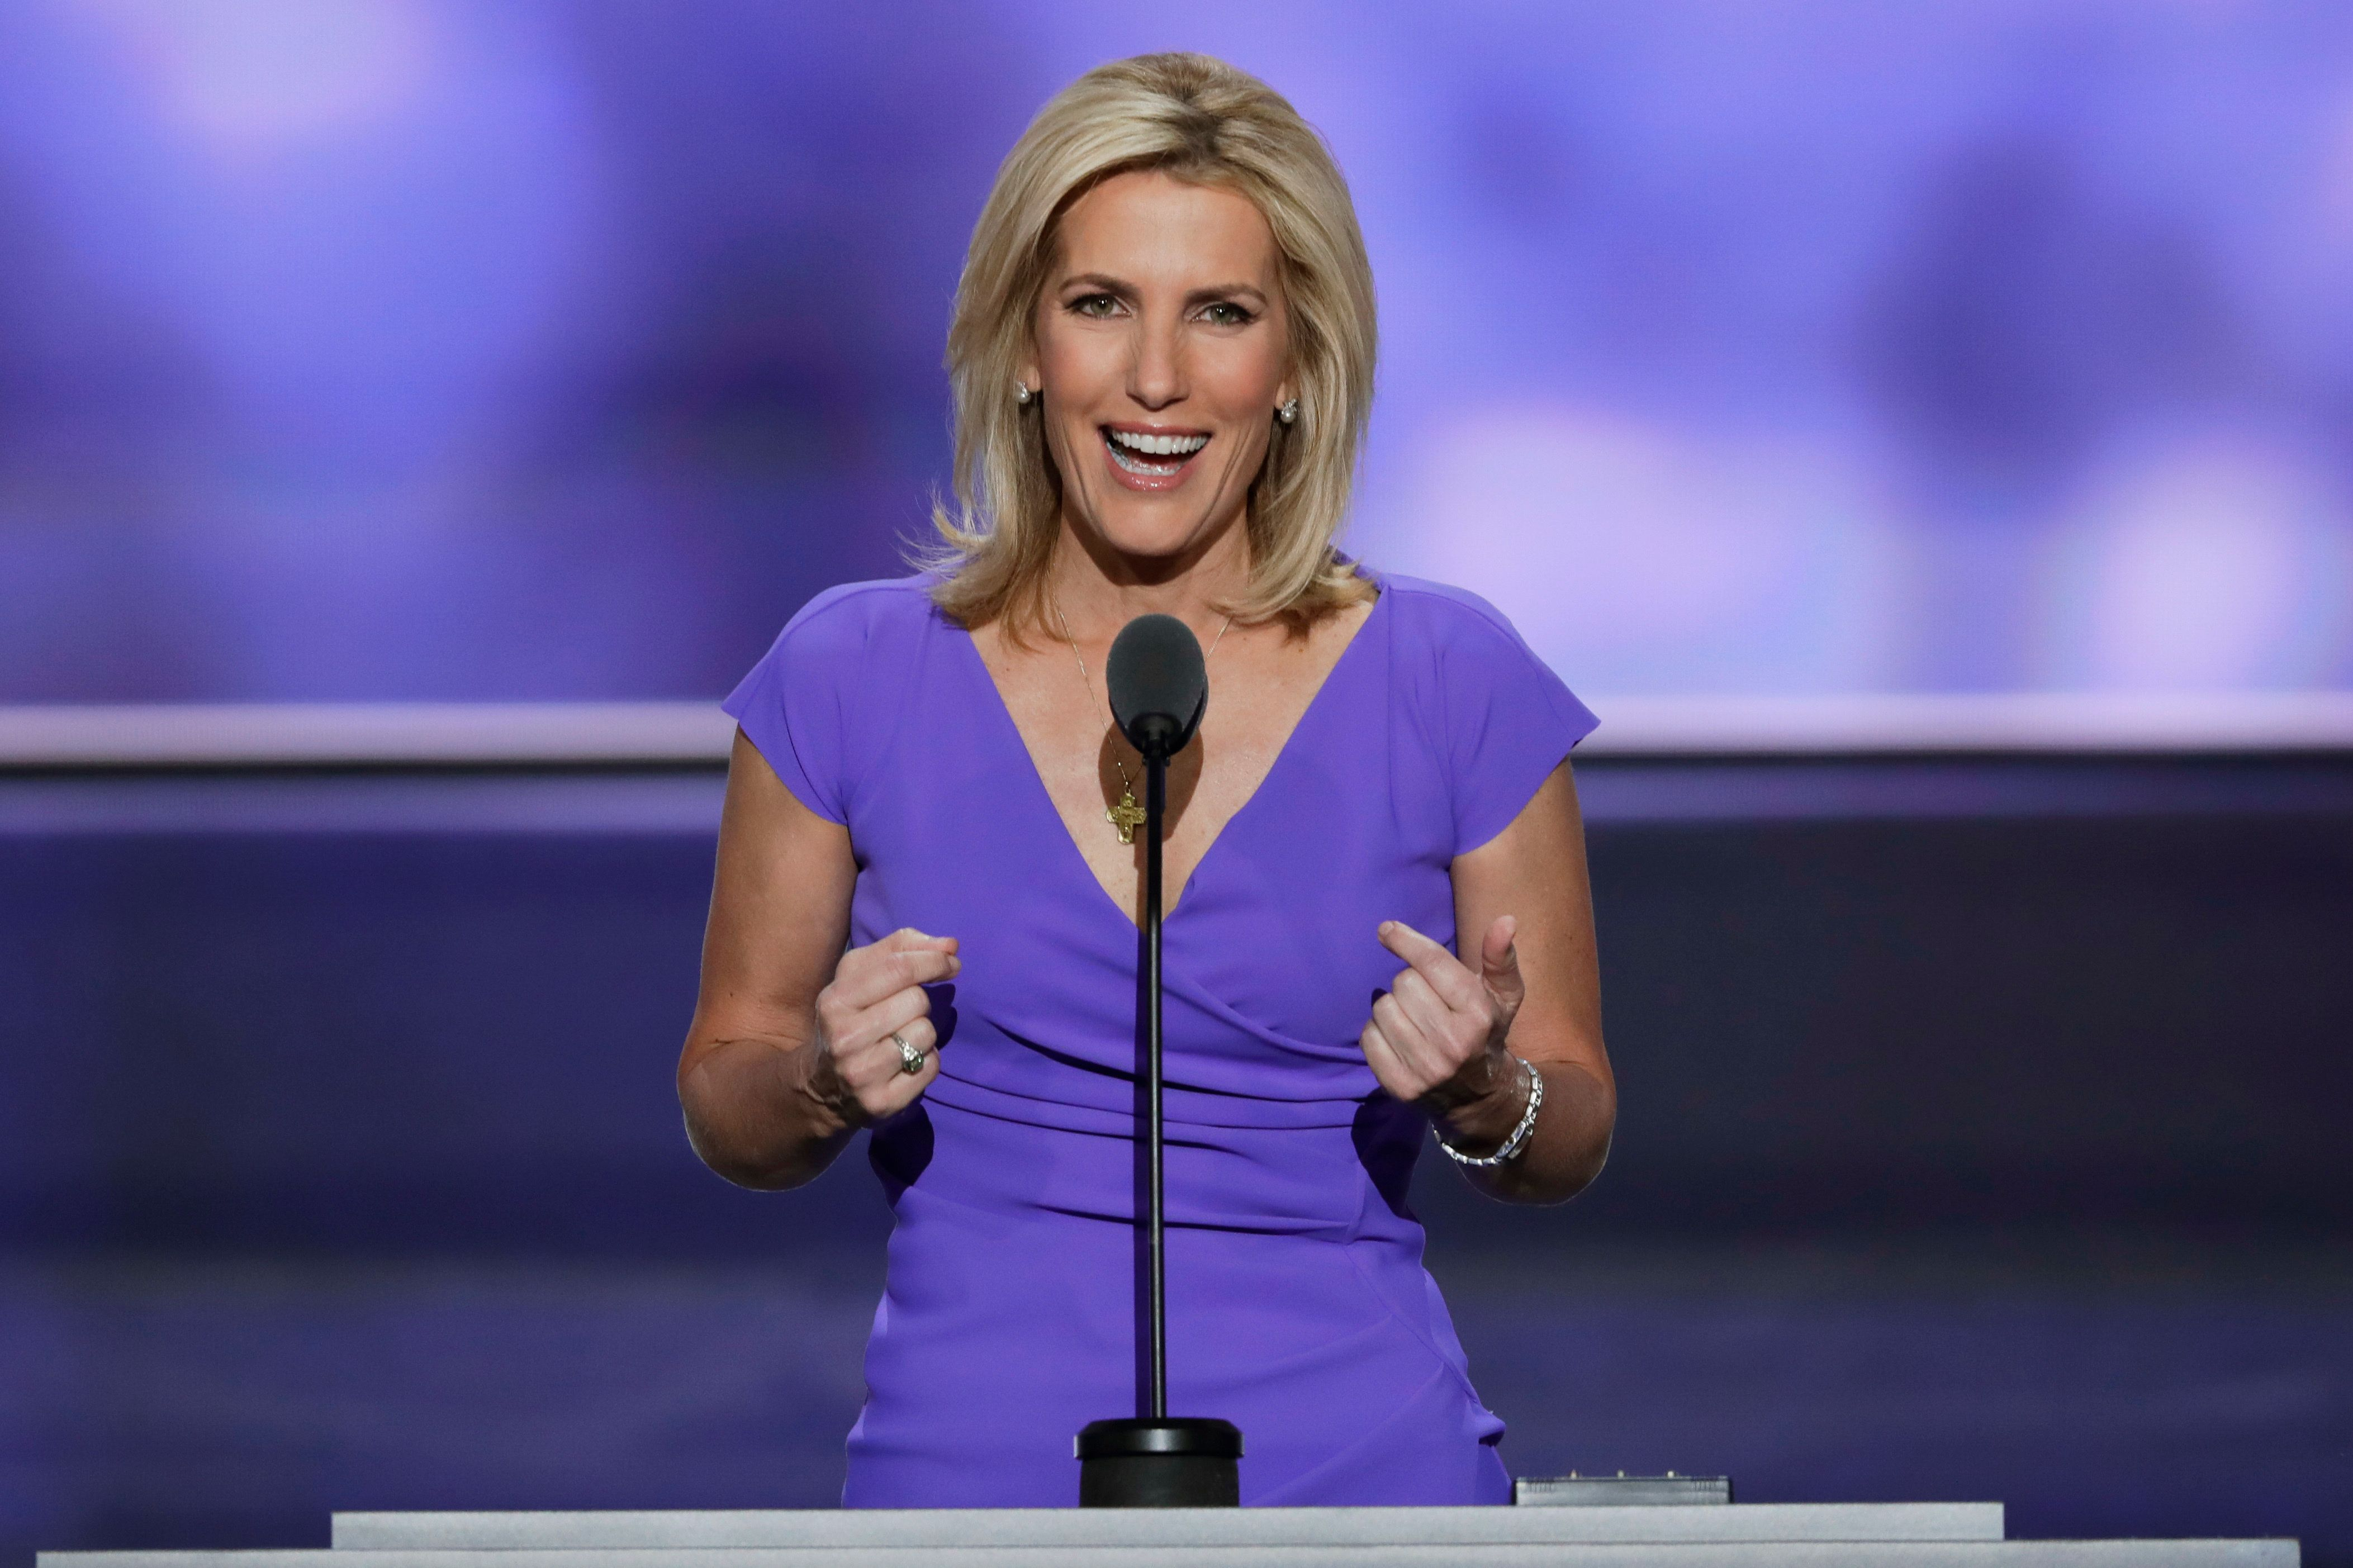 Fox News' Laura Ingraham Likens People Protesting Confederate Statues To ISIS